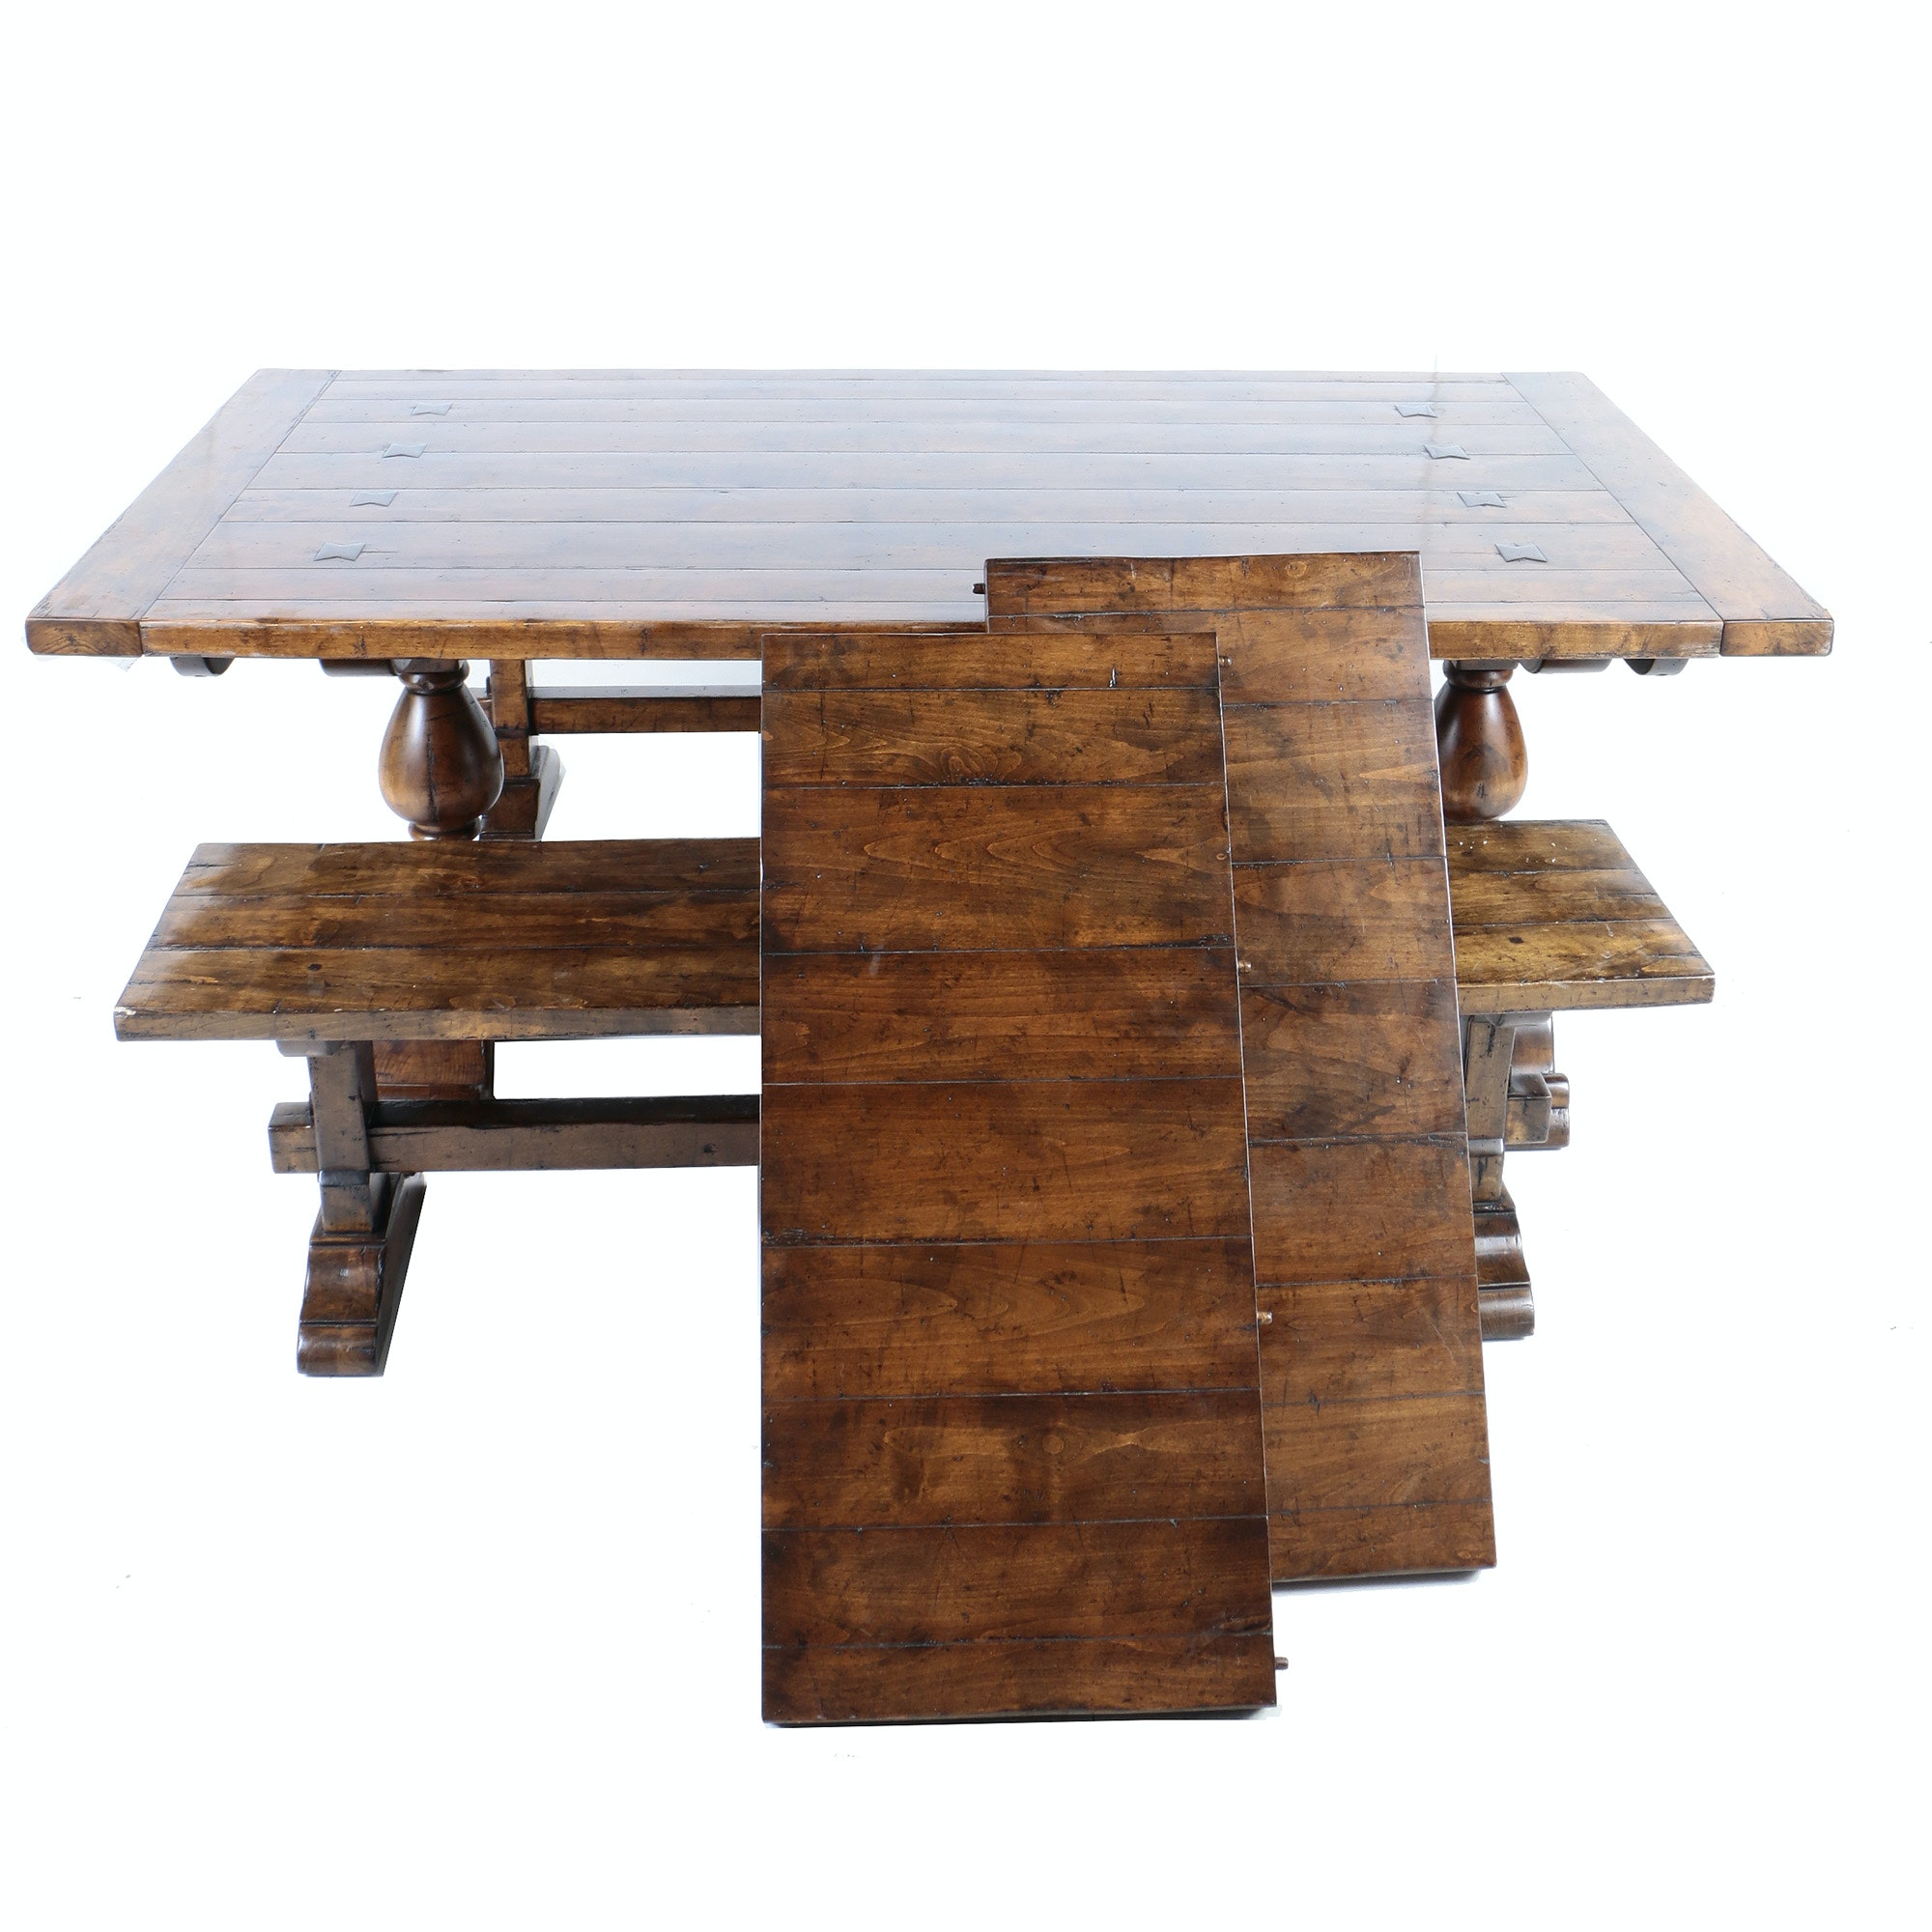 Walnut Stained Trestle Dinging Table with Extension Leaves and Benches